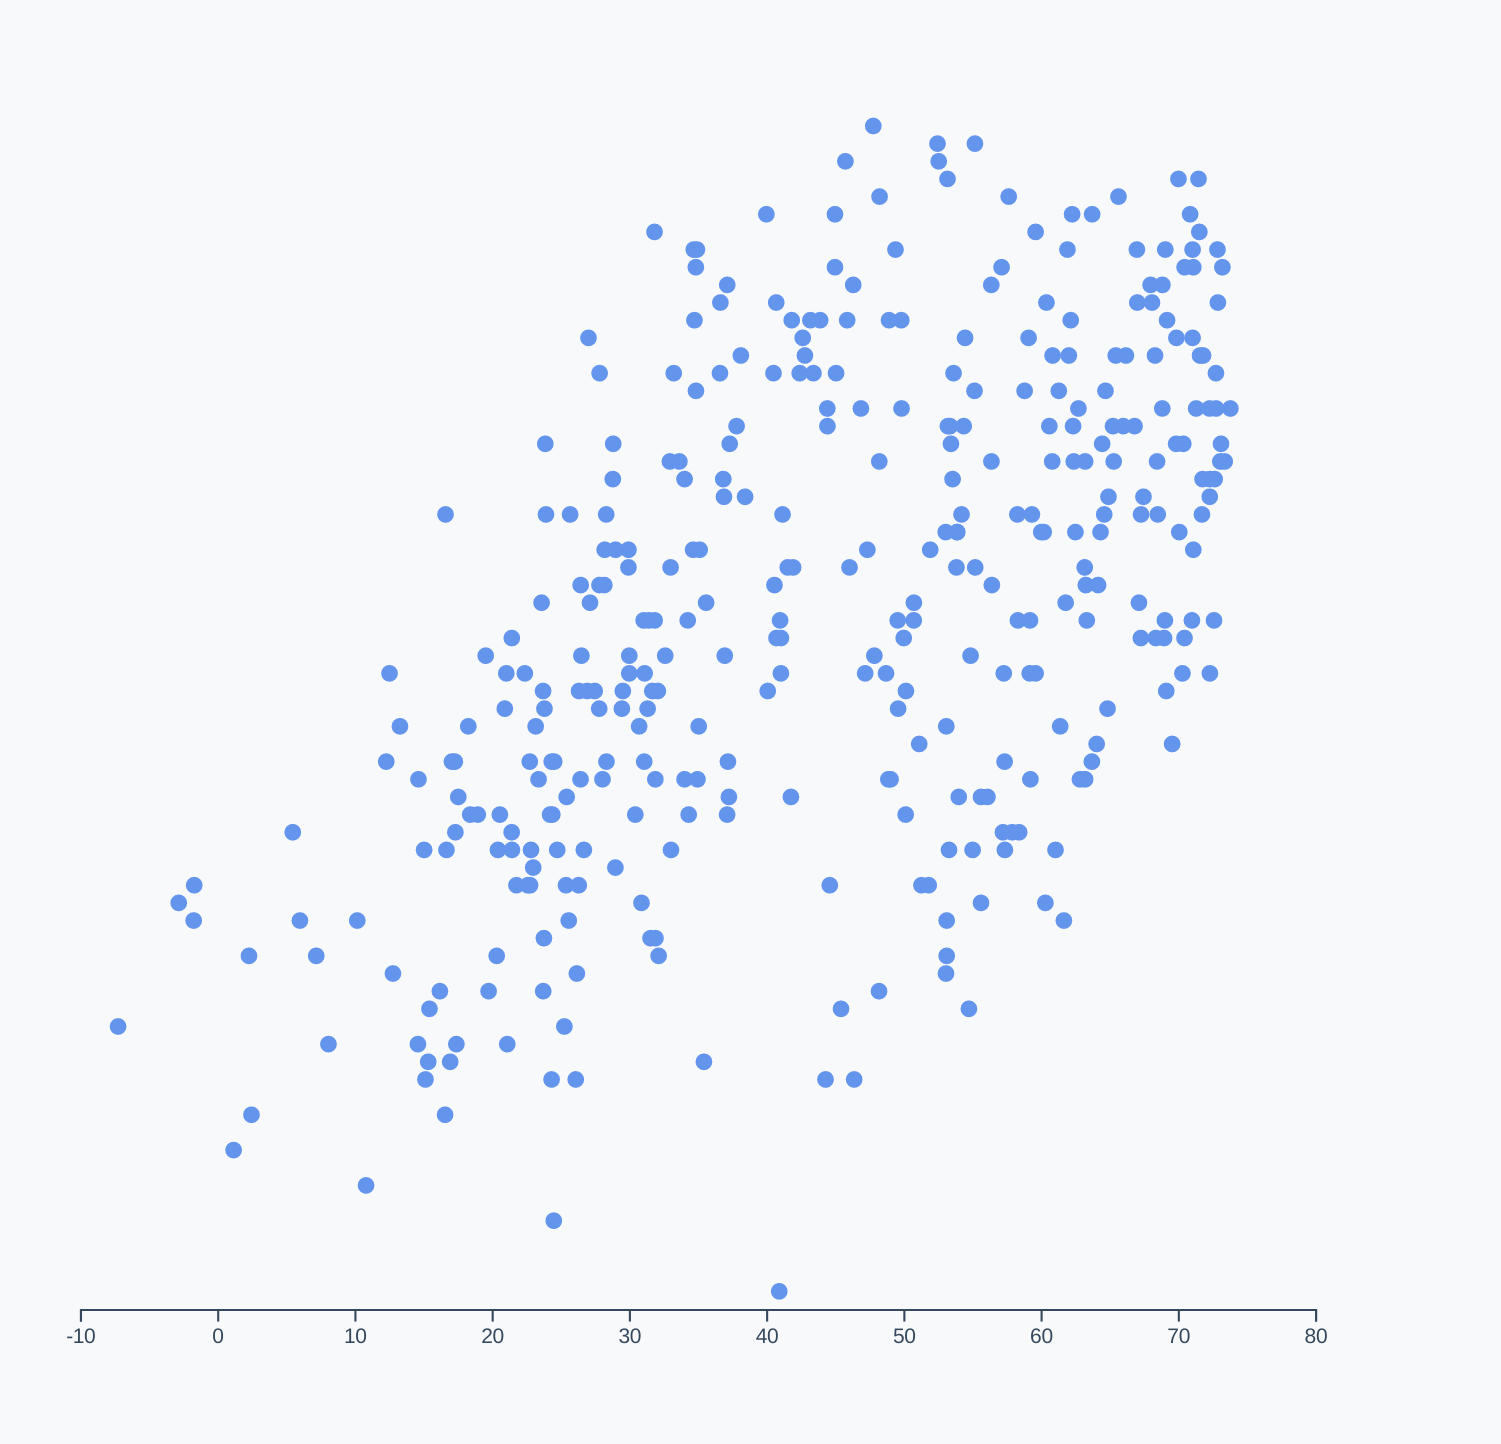 Scatterplot with an x axis